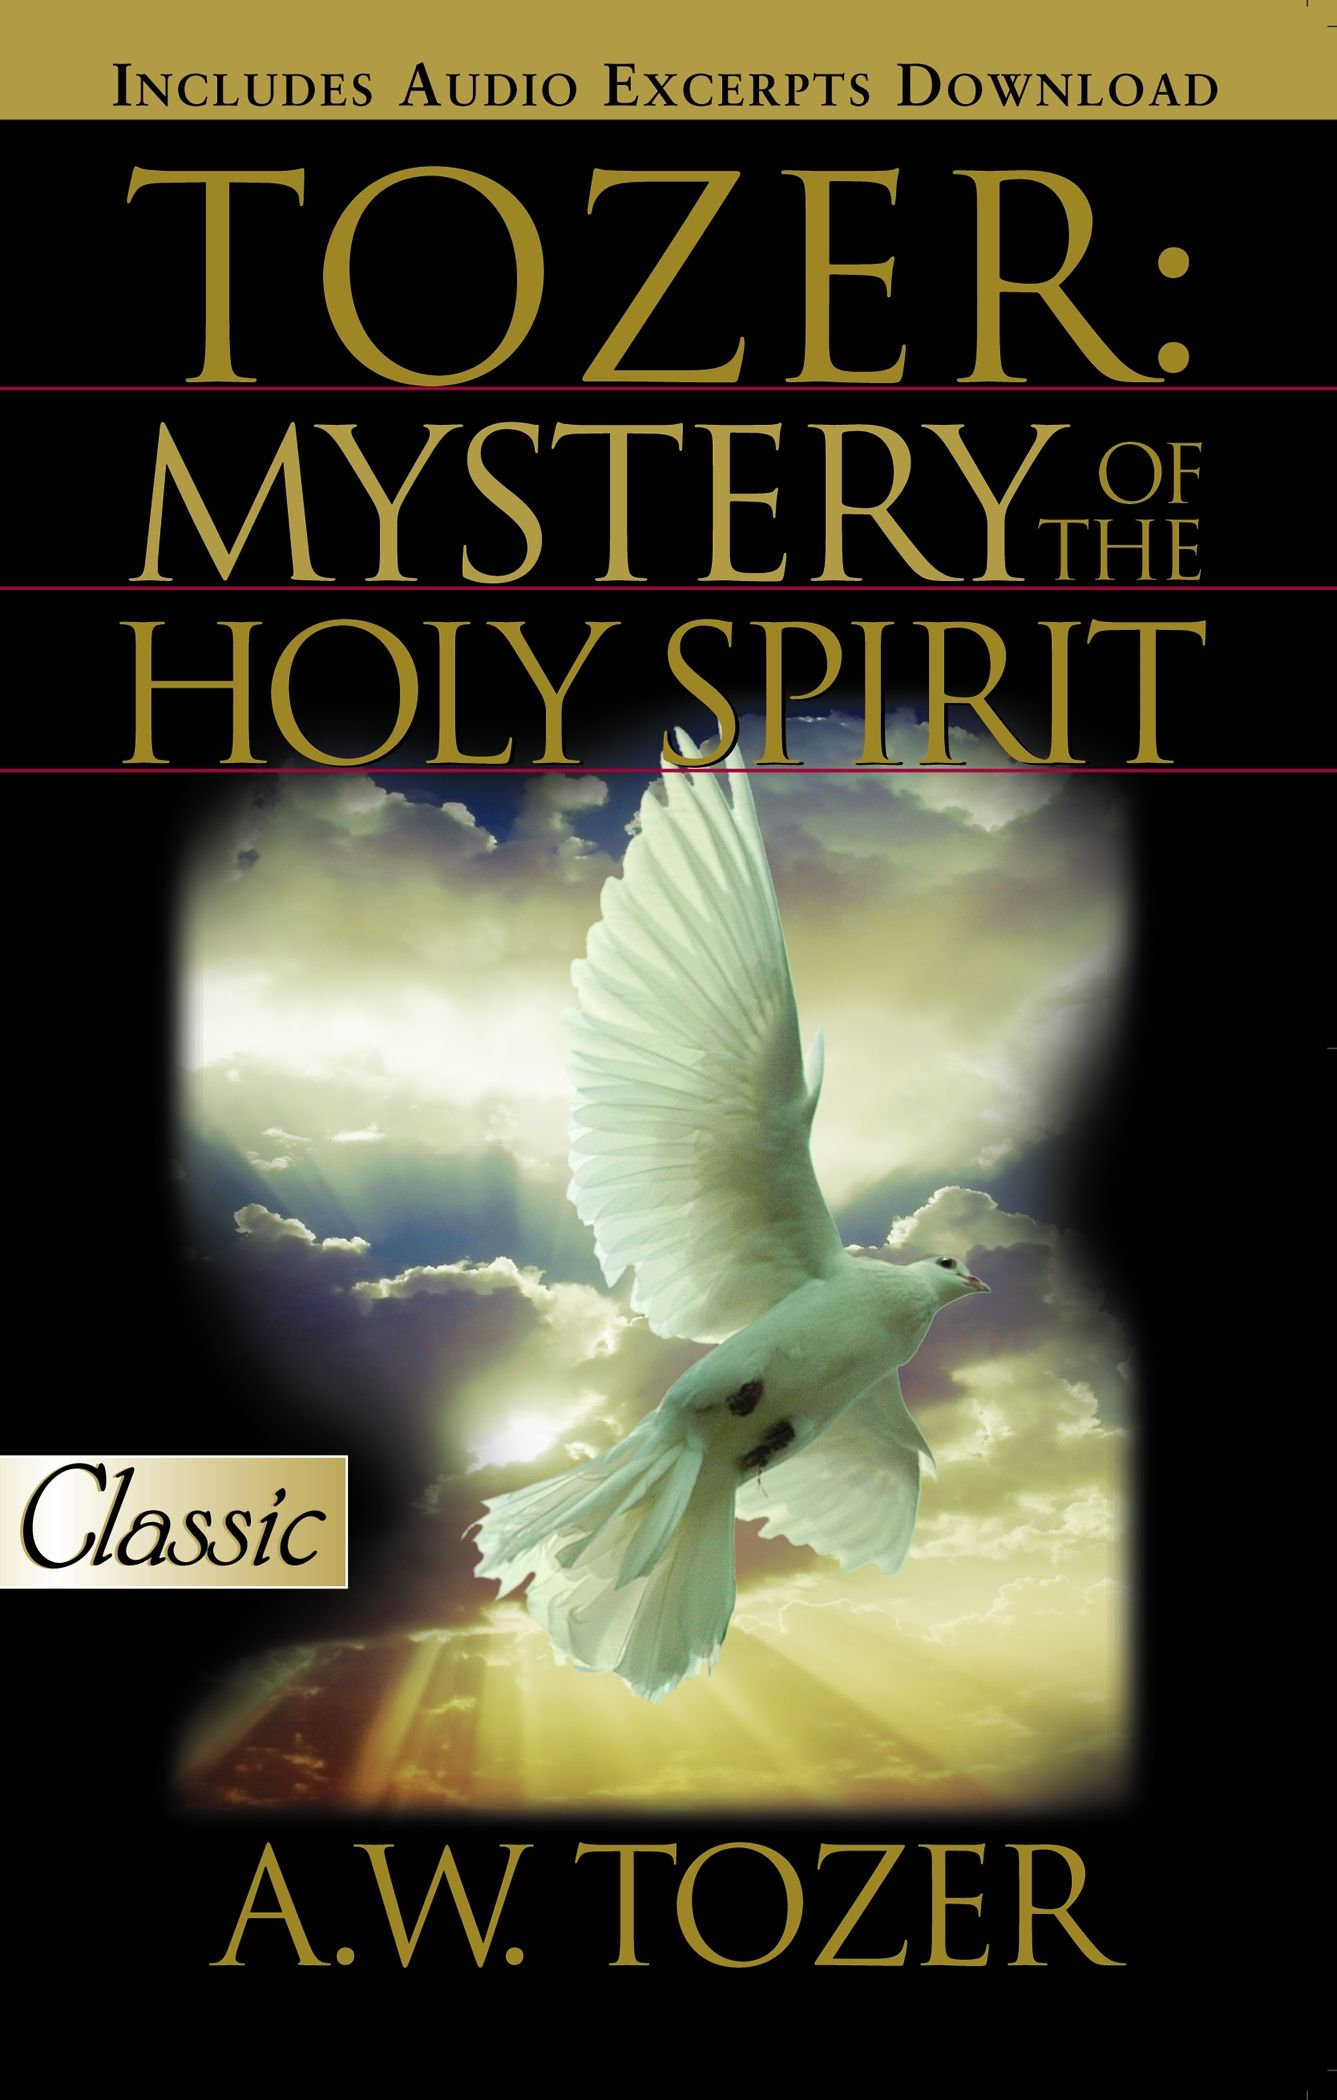 Tozer:Mystery of the Holy Spirit